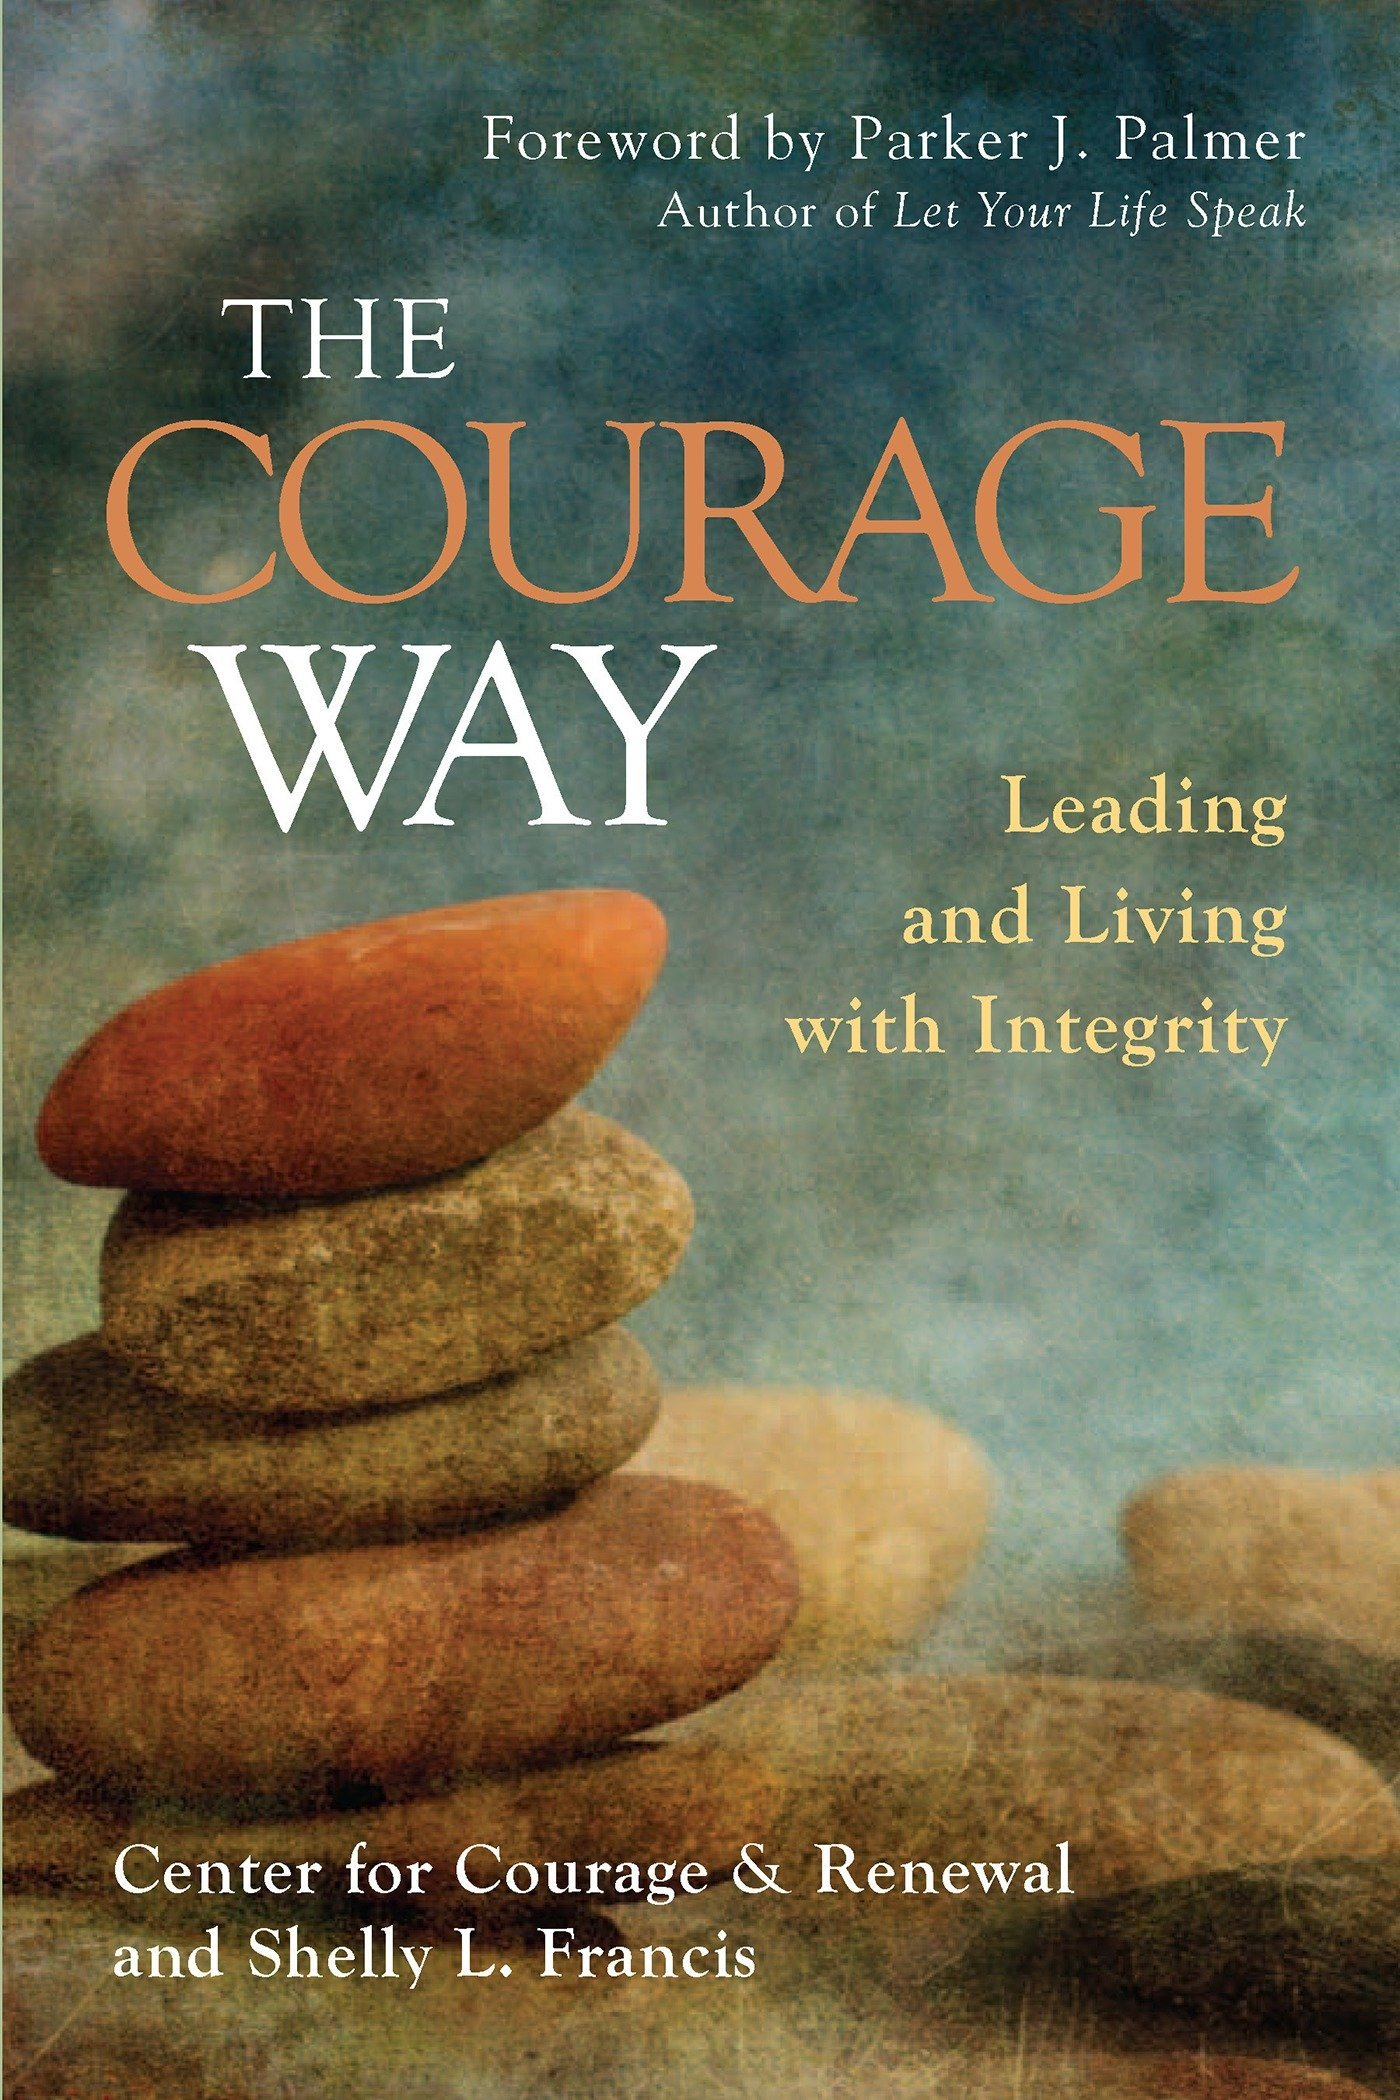 The Courage Way: Leading and Living with Integrity